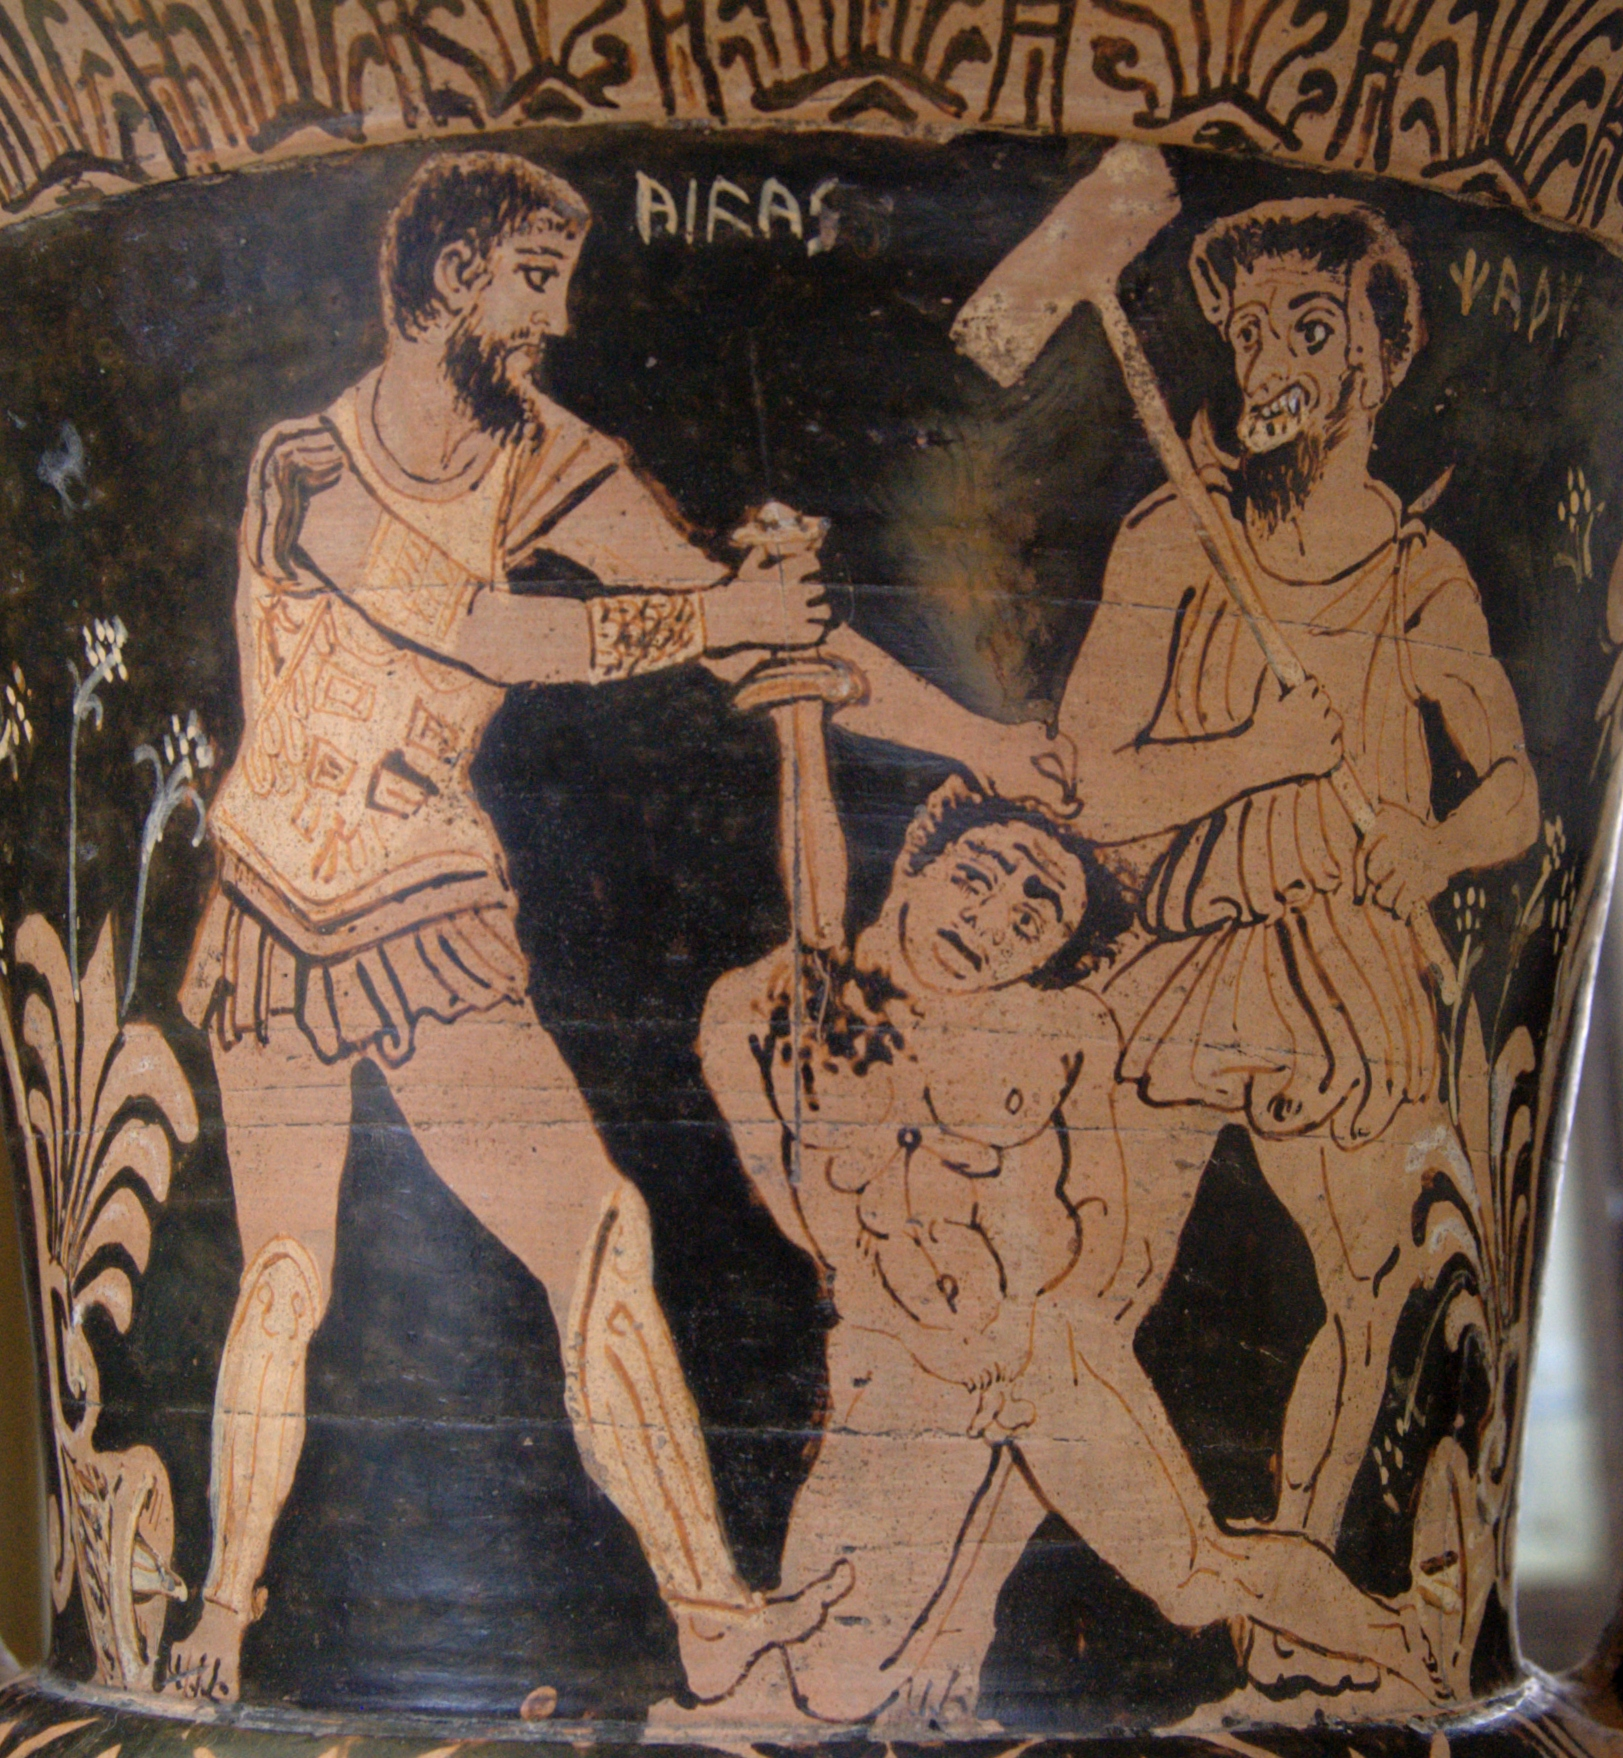 Achilles killing a Trojan prisoner in front of Charun, armed with a hammer (Public domain: Bibi Saint-Pol)